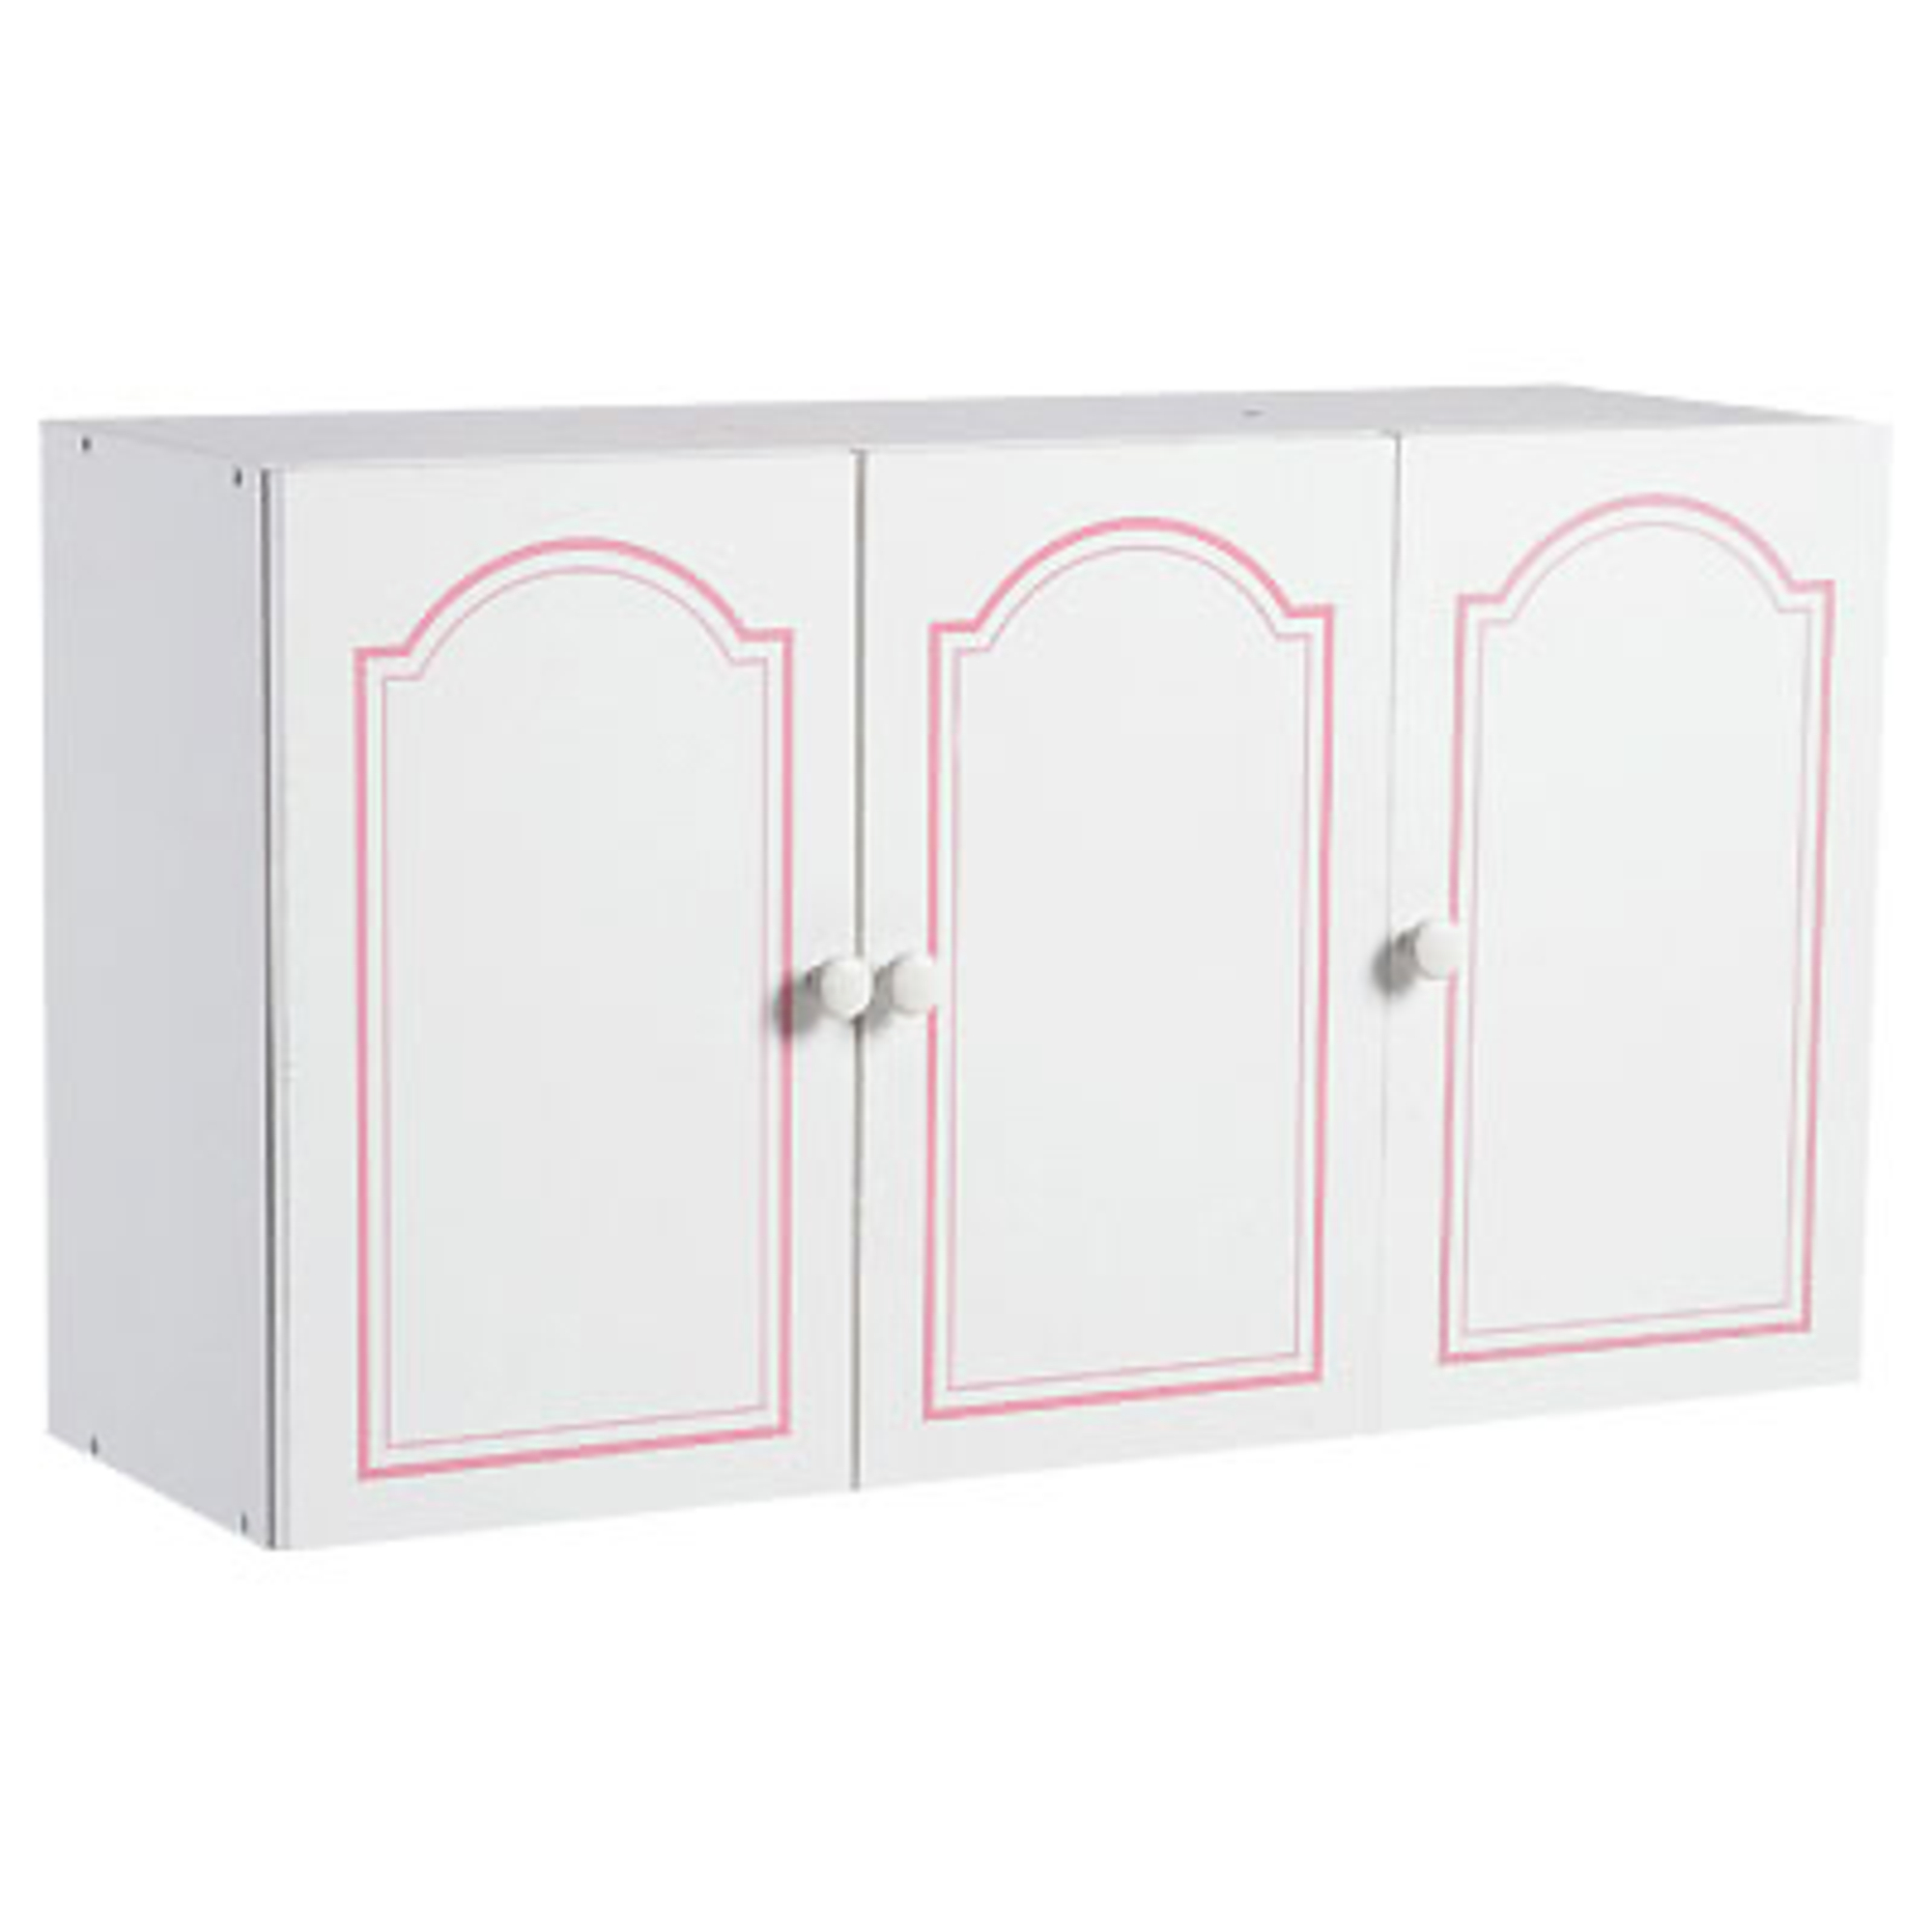 meuble haut 3 portes salle de bain belle ile blanc filet rose anniversaire 40 ans acheter. Black Bedroom Furniture Sets. Home Design Ideas